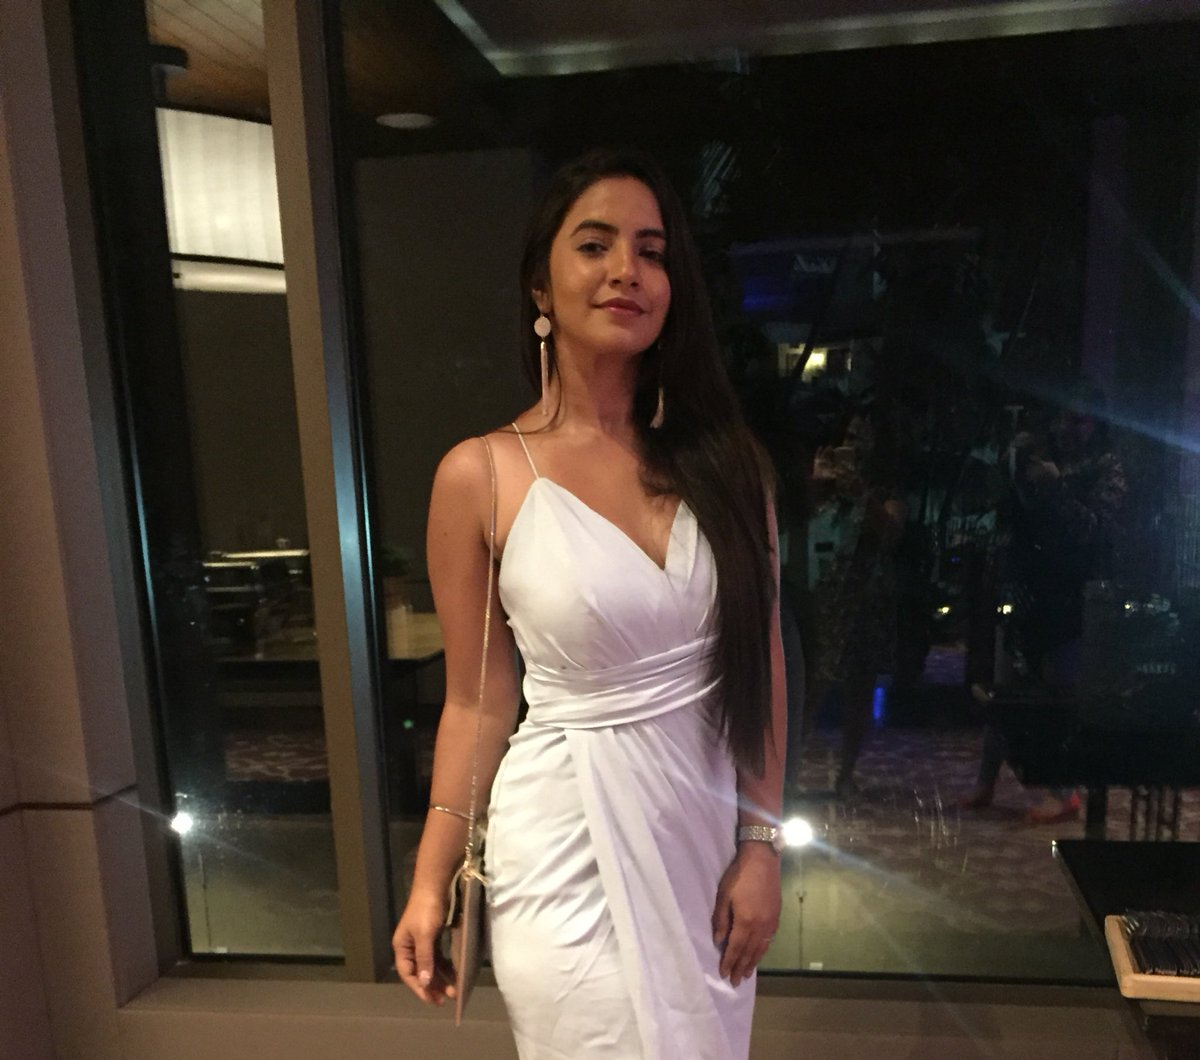 Meera Deosthale aka Chakor in Udaan looks hot and sexy in a white dress - Udann 1000 Episodes Party pics